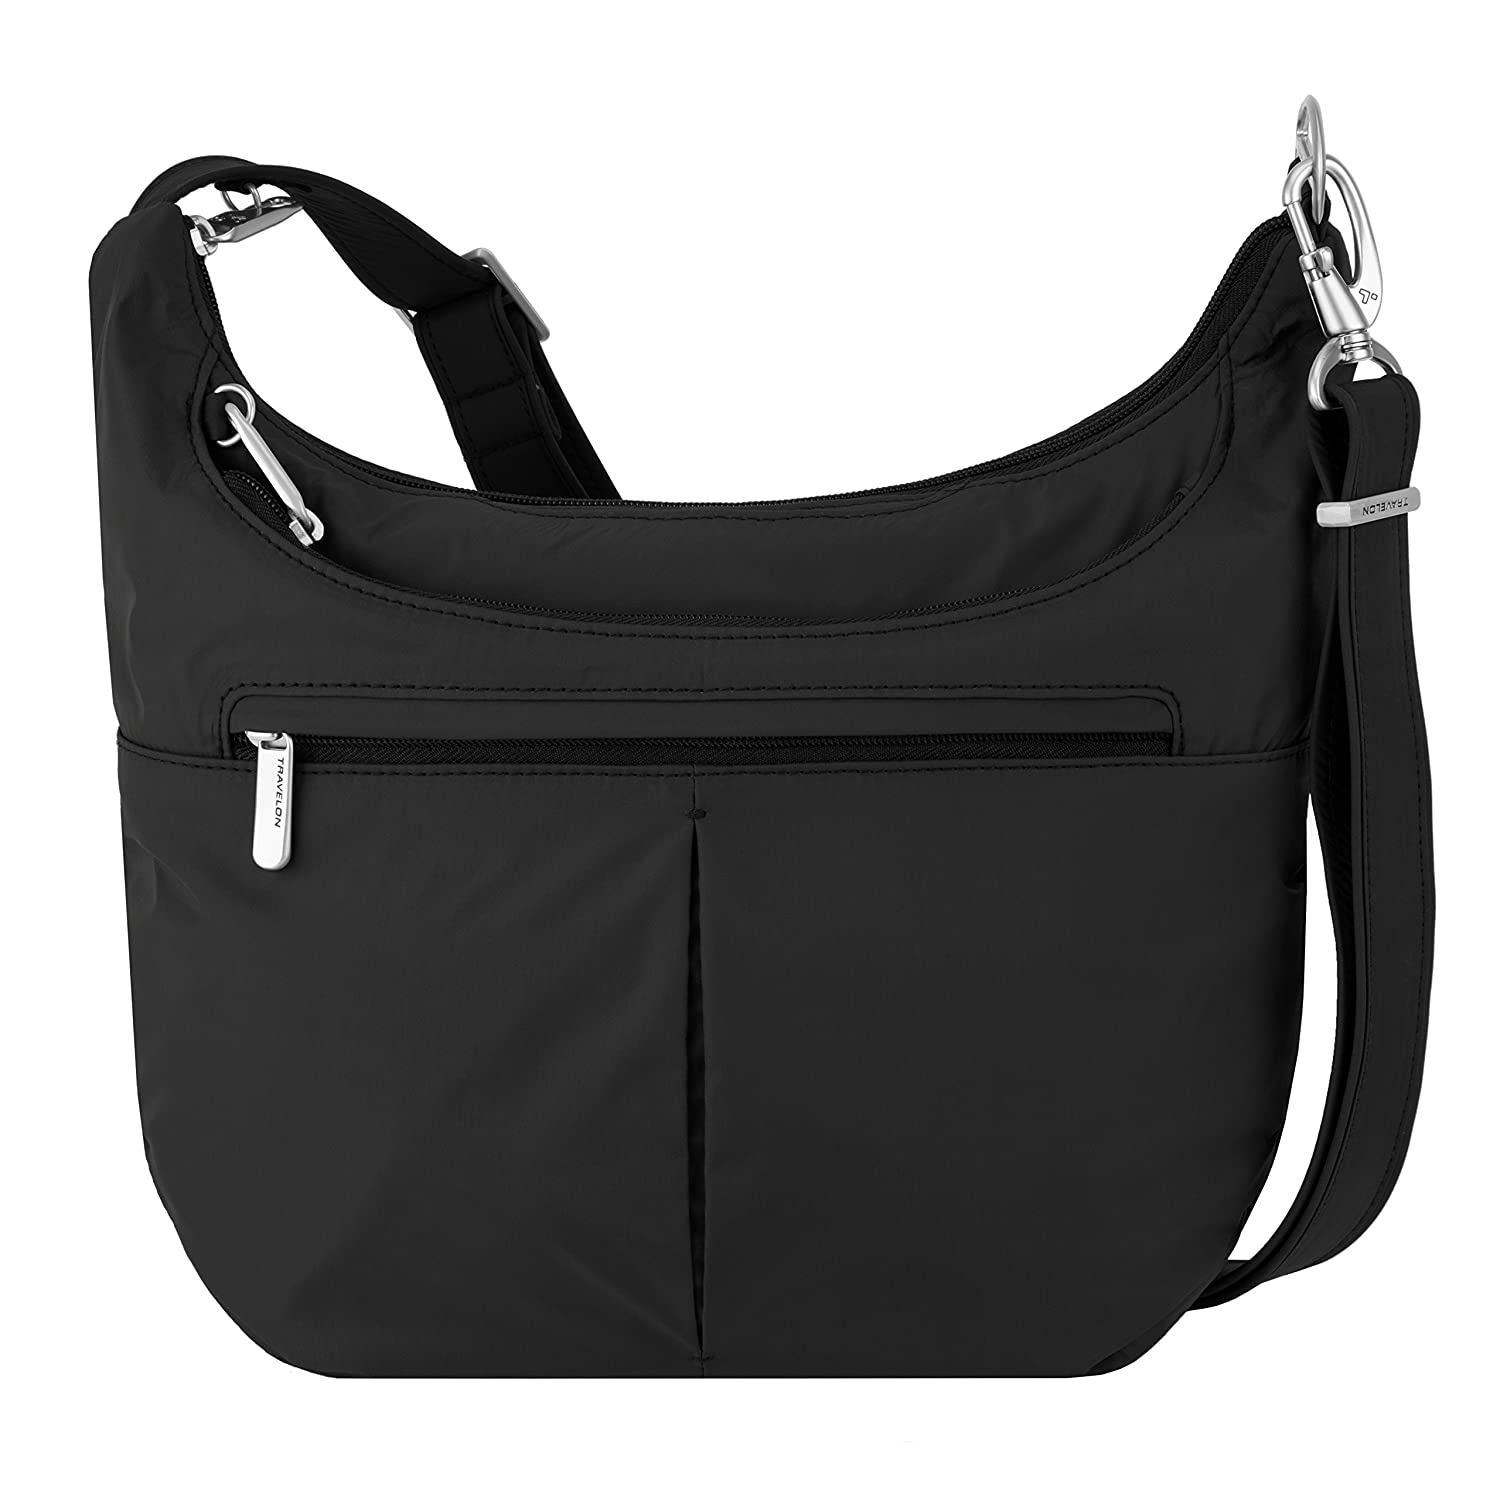 3ddea50778fe Amazon.com  Travelon Anti-Theft Classic Slouch Hobo